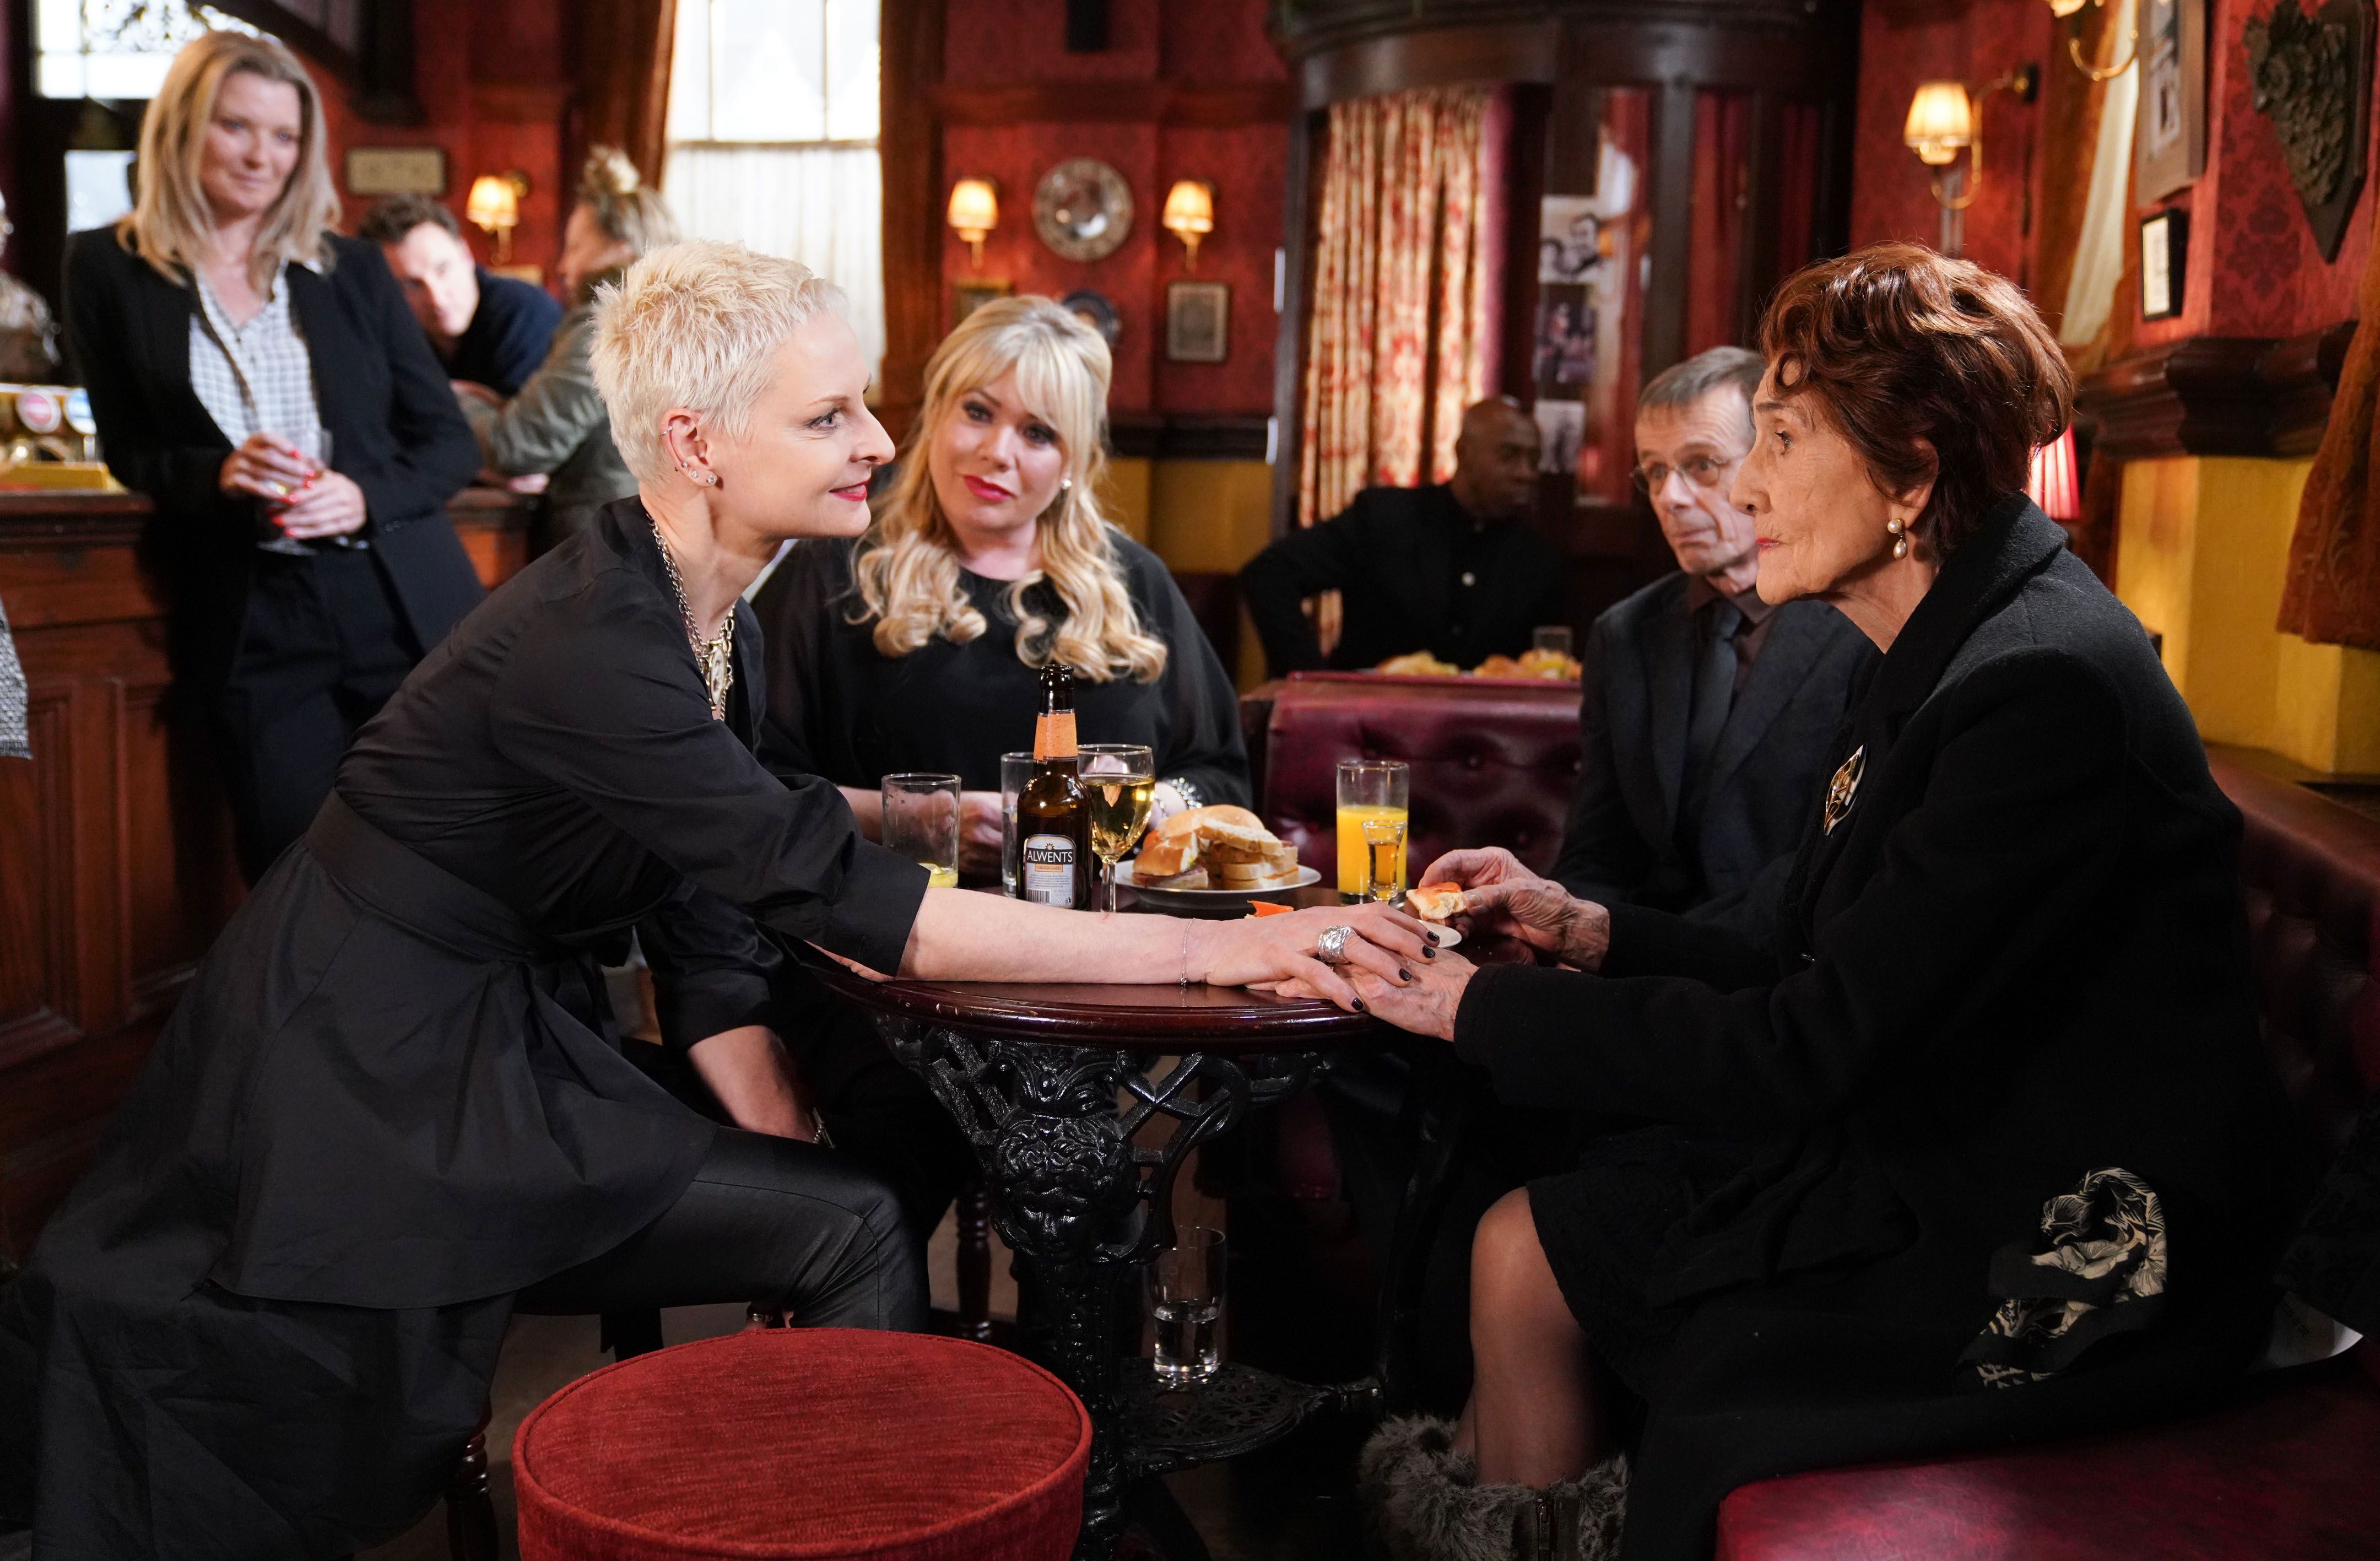 eastenders-mary-smith-george-holloway-return-3-1549797653.jpg?crop=1xw:1xh;center,top&resize=980:*